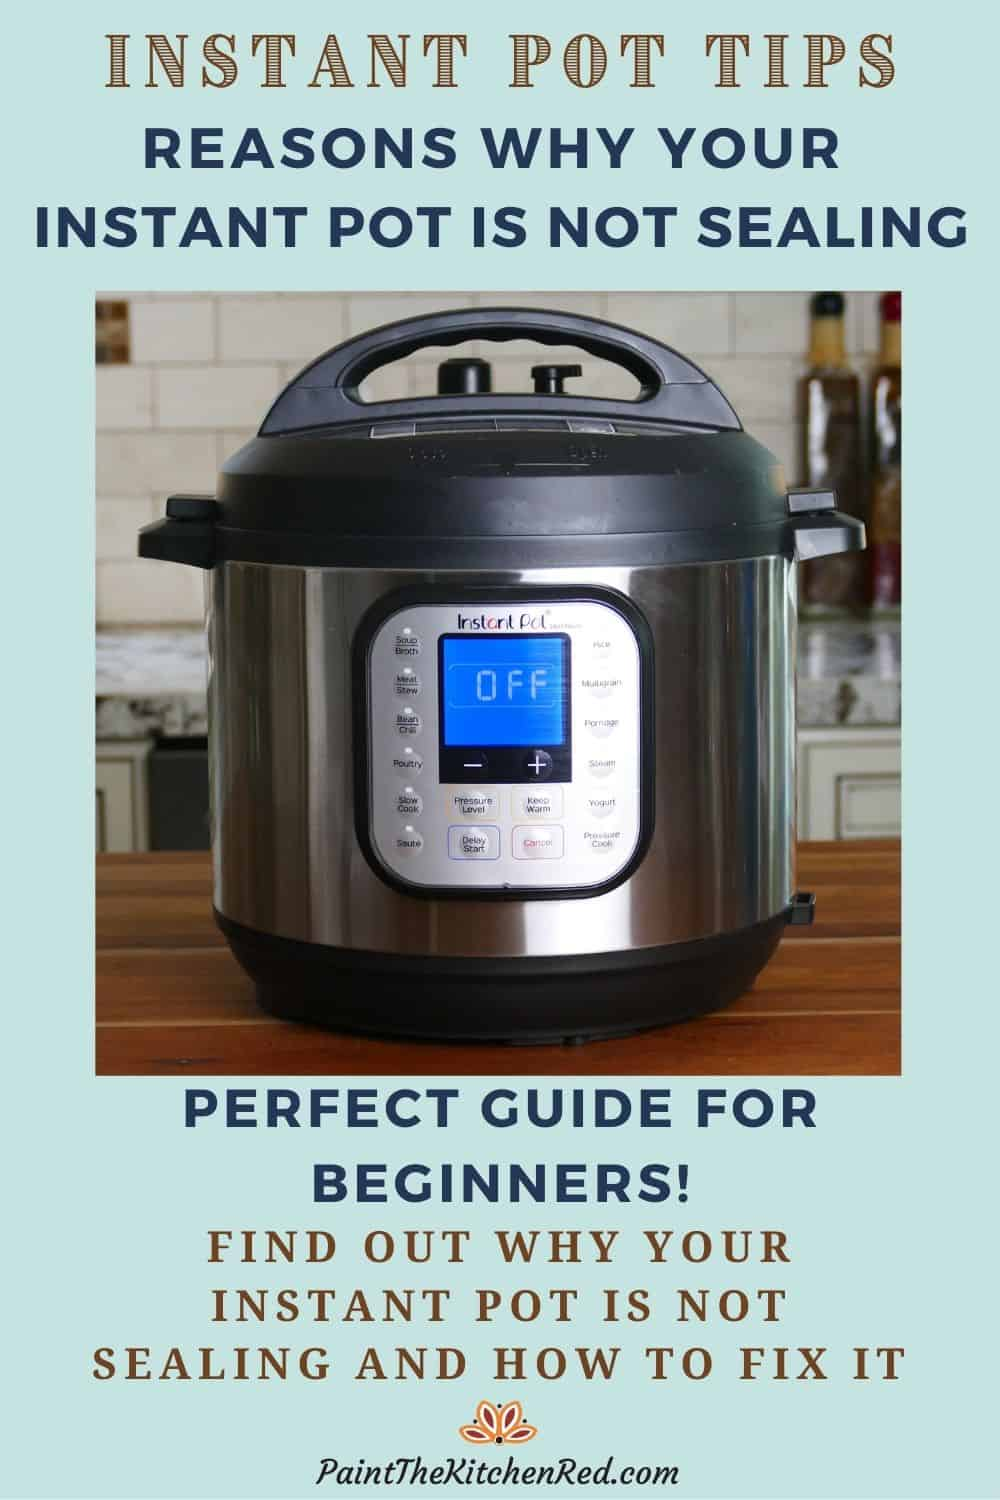 Instant Pot Tips, Reasons why your Instant Pot is not sealing. Perfect guide for beginners! Find out why your Instant Pot is not sealing and how to fix it